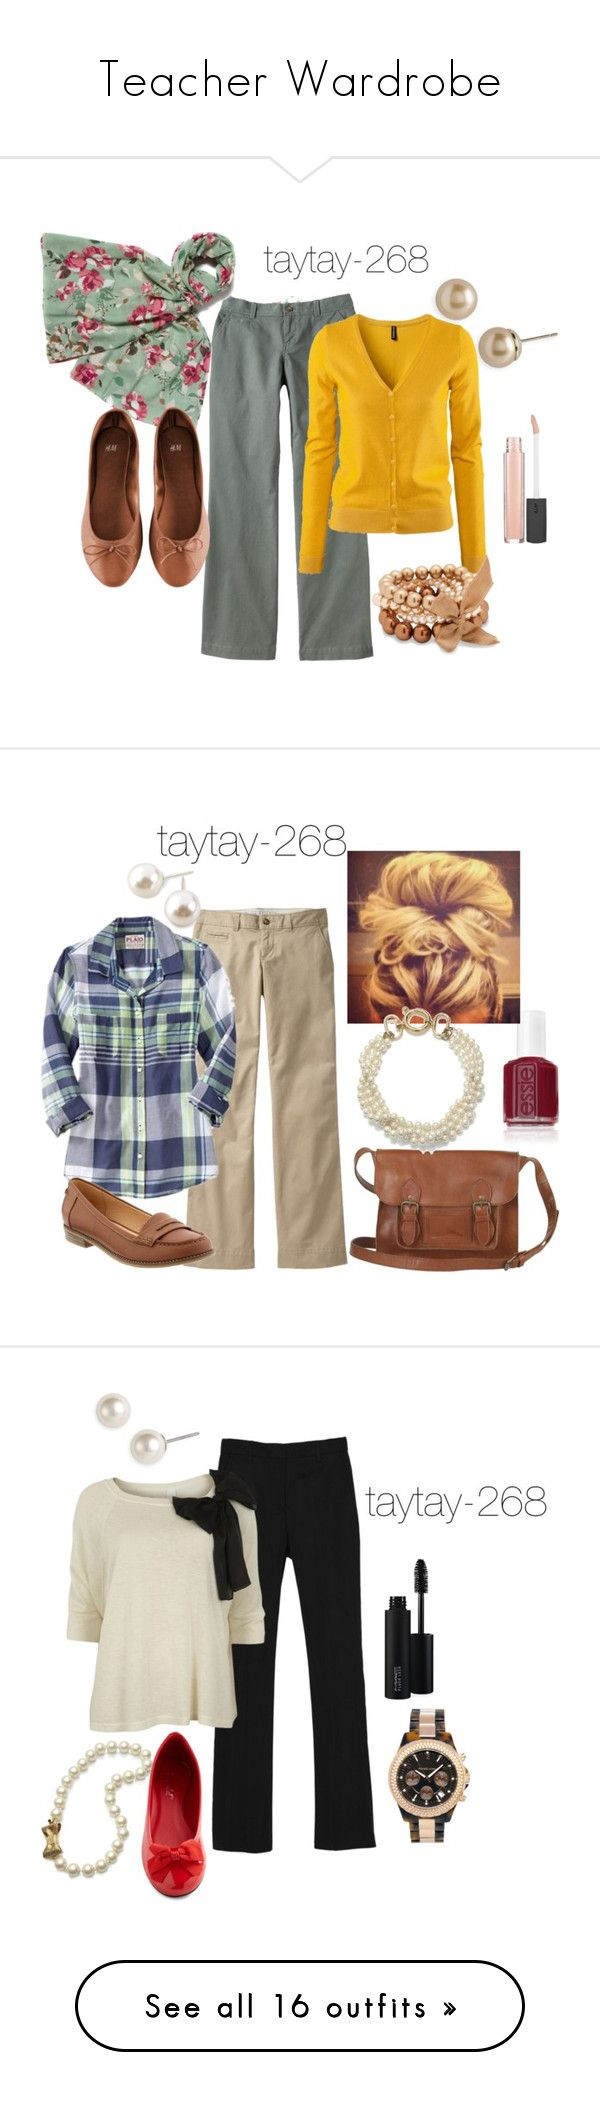 Teacher Wardrobe by taytay-268 on Polyvore featuring Old Navy, Majorica, H&M, EAST, Betty Jackson, Bite, Cezanne, Fat Face, Essie and Fallon